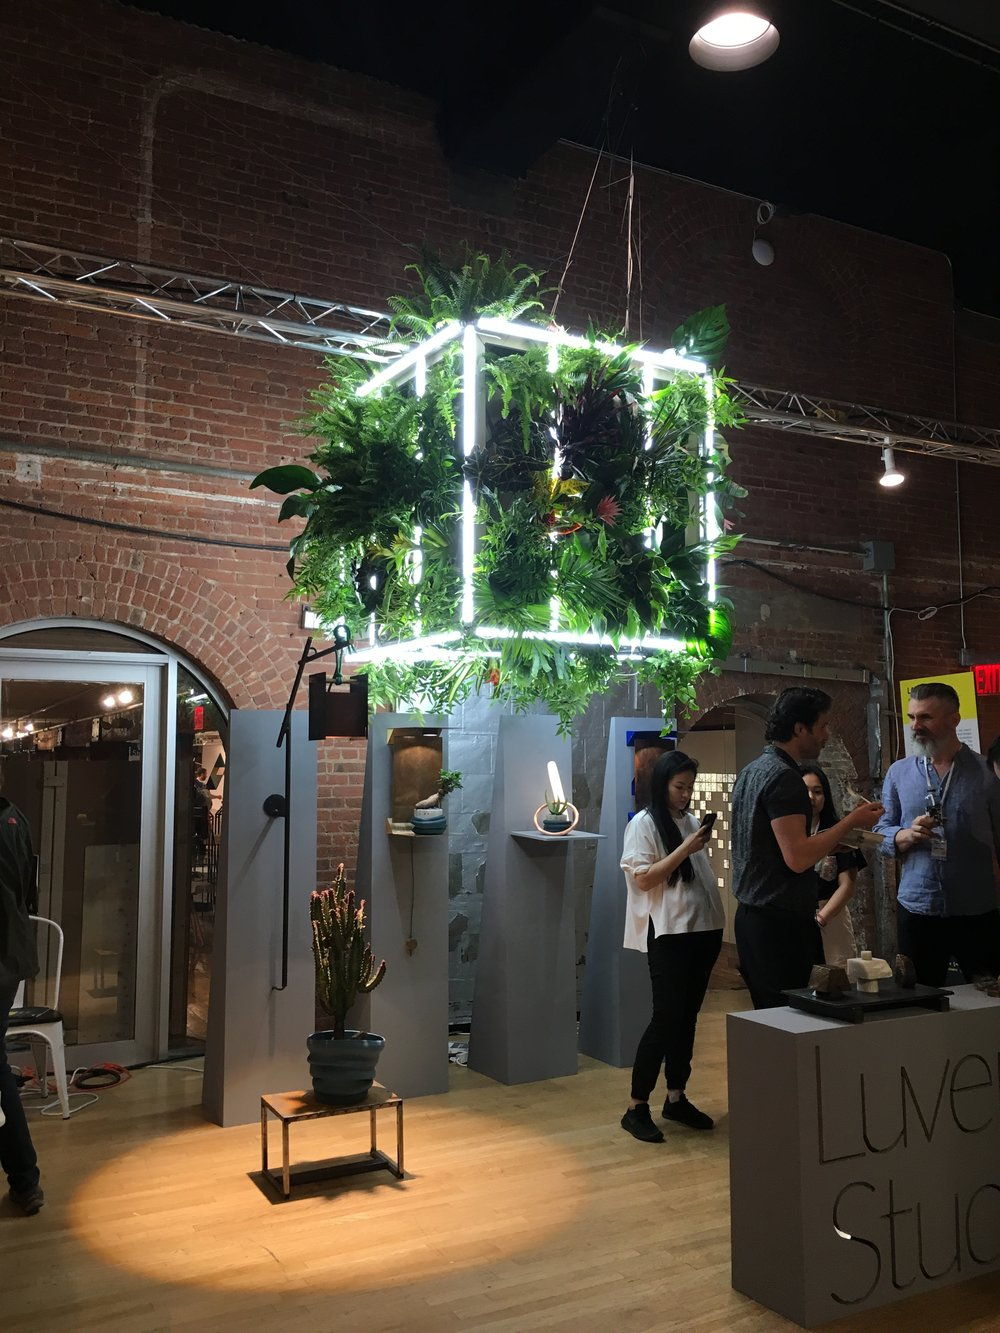 Photo of  Luvere Studio  installation at WantedDesign, New York 2018